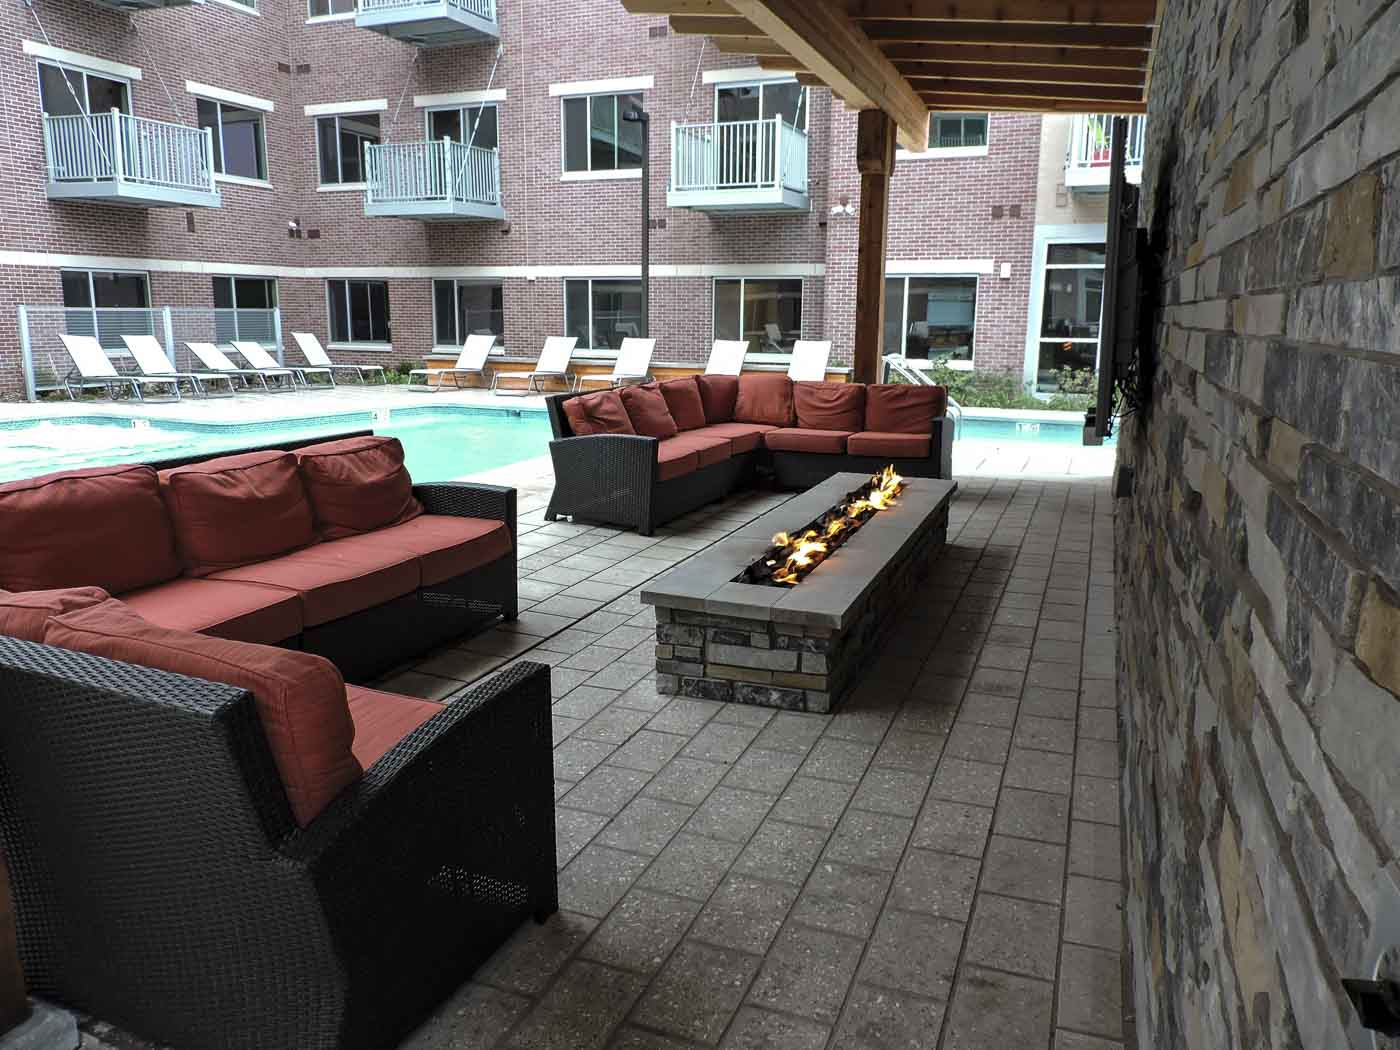 h20 commercial pool seating area